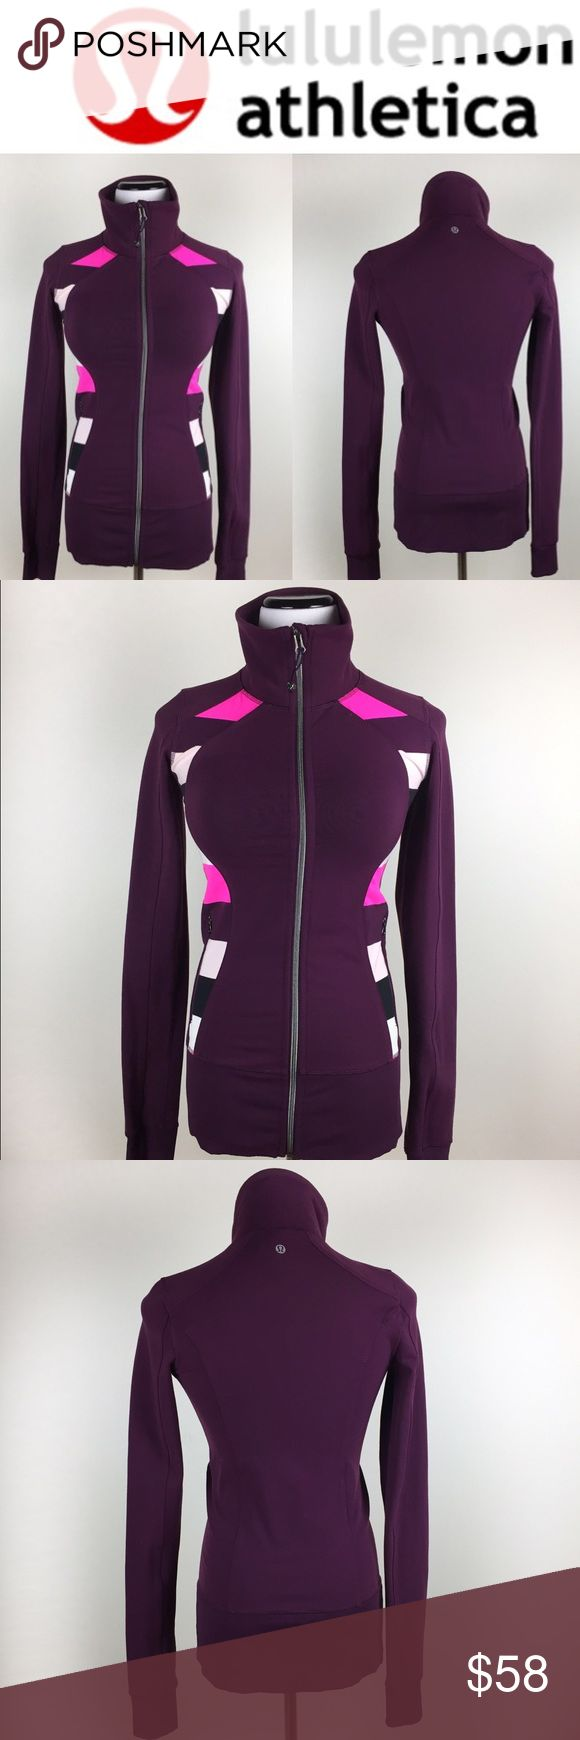 🤸‍♀️🎀Lululemon Athletica scuba zipper jacket Gorgeous Lululemon maroon scuba with zipper, colorful logo in the middle or the jacket with touches of pink white and black! Extremely gently worn, following Lululemon advices care. No holes or discoloration! Just gorgeous! Size 4 but could fit a small 6 Make an offer! Questions? Ask me 🎉🎀 lululemon athletica Jackets & Coats